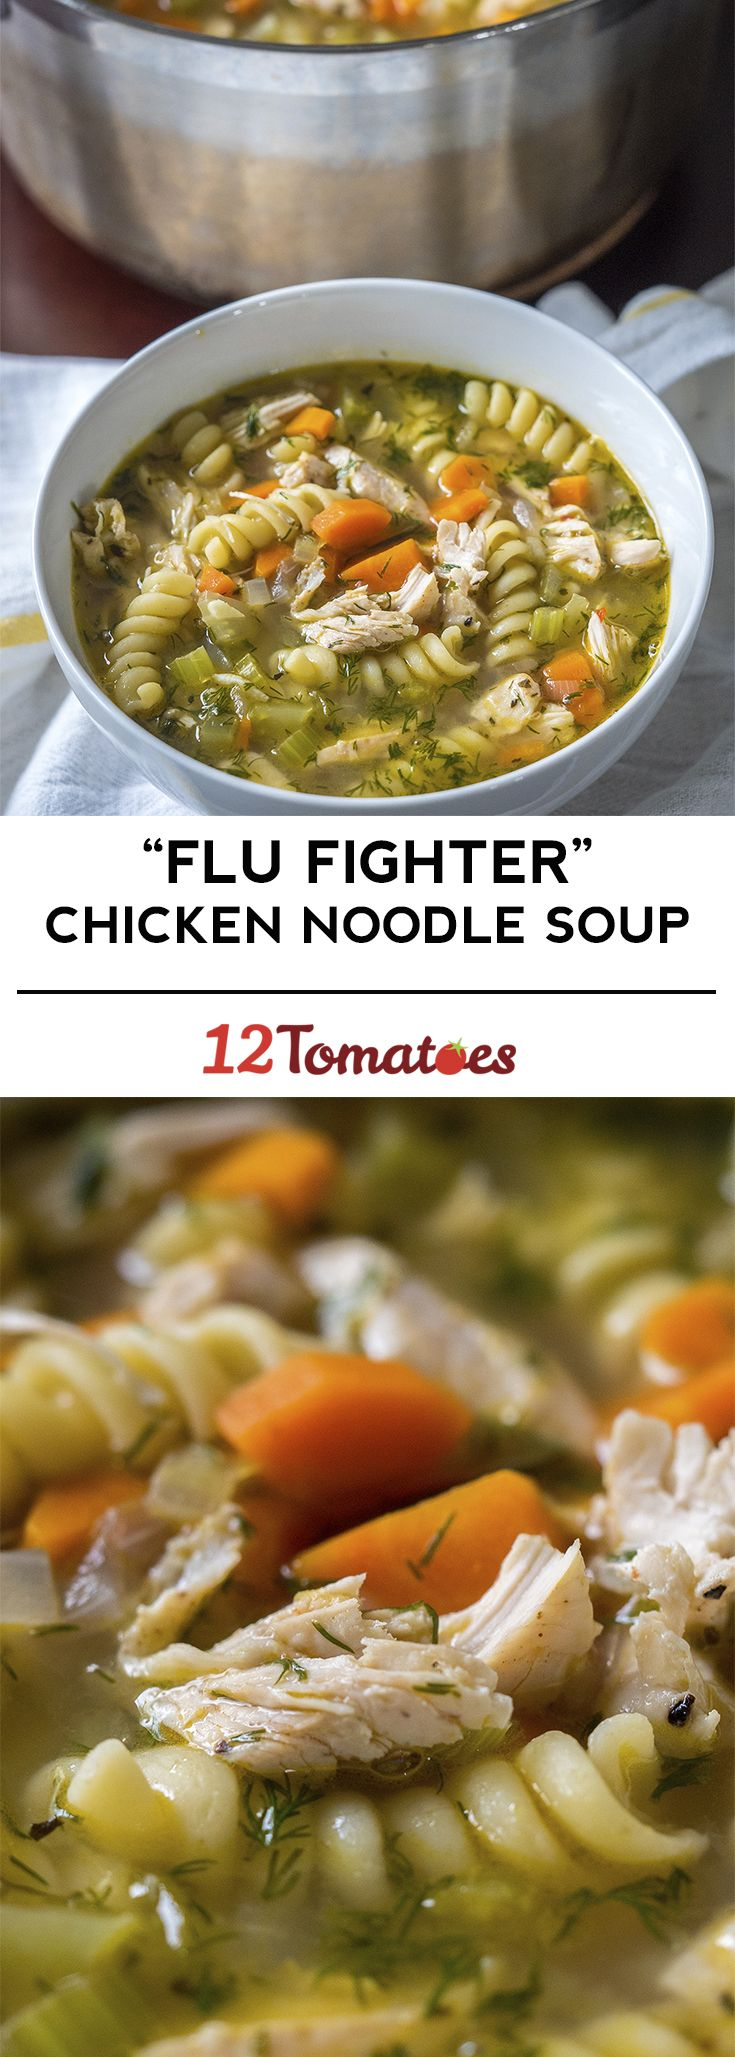 Best 25 chicken noodle recipes ideas on pinterest for Homemade chicken noodle soup crock pot